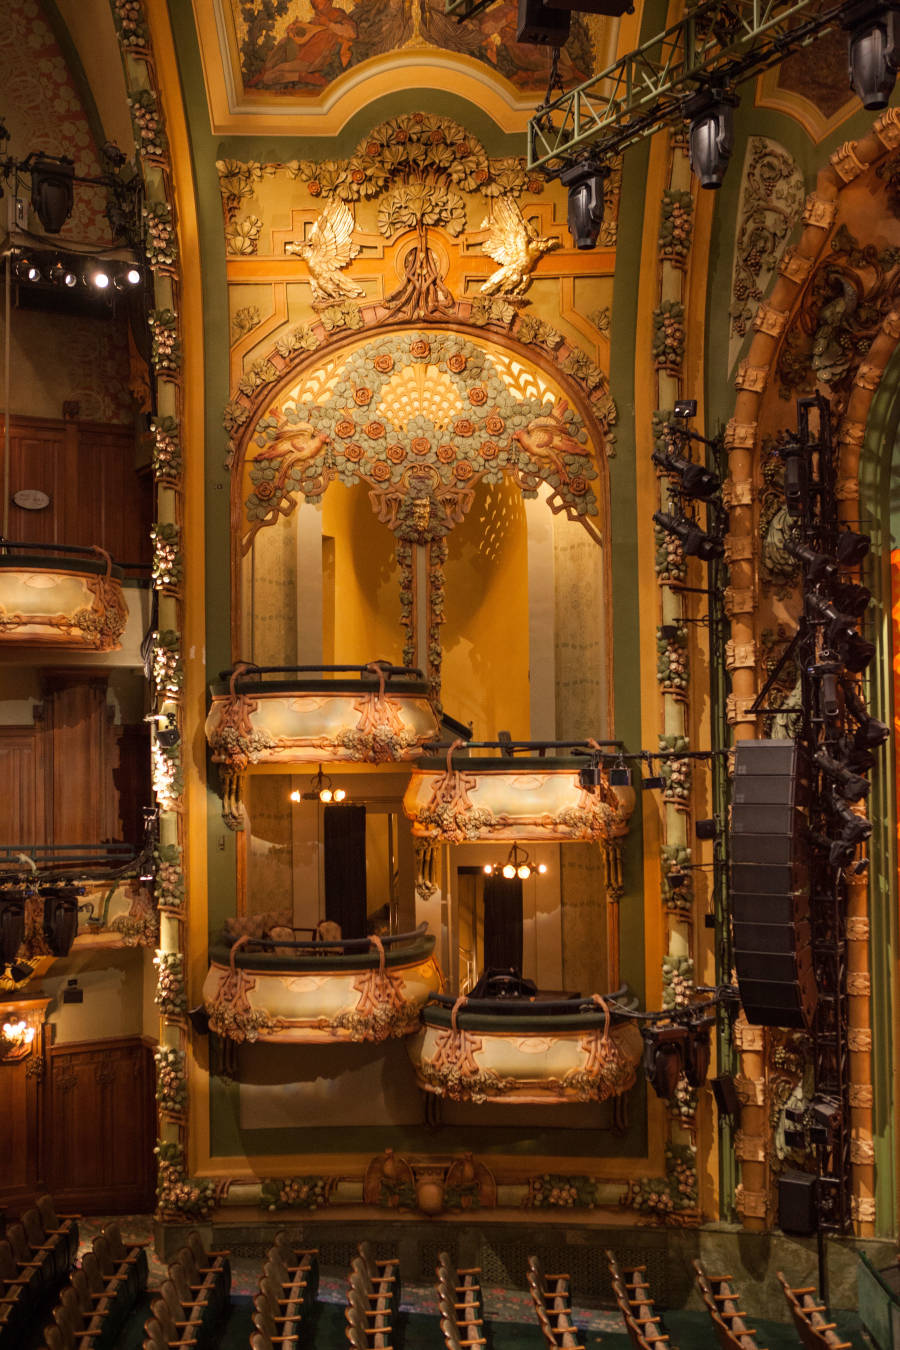 Interior of the New Amsterdam Theater